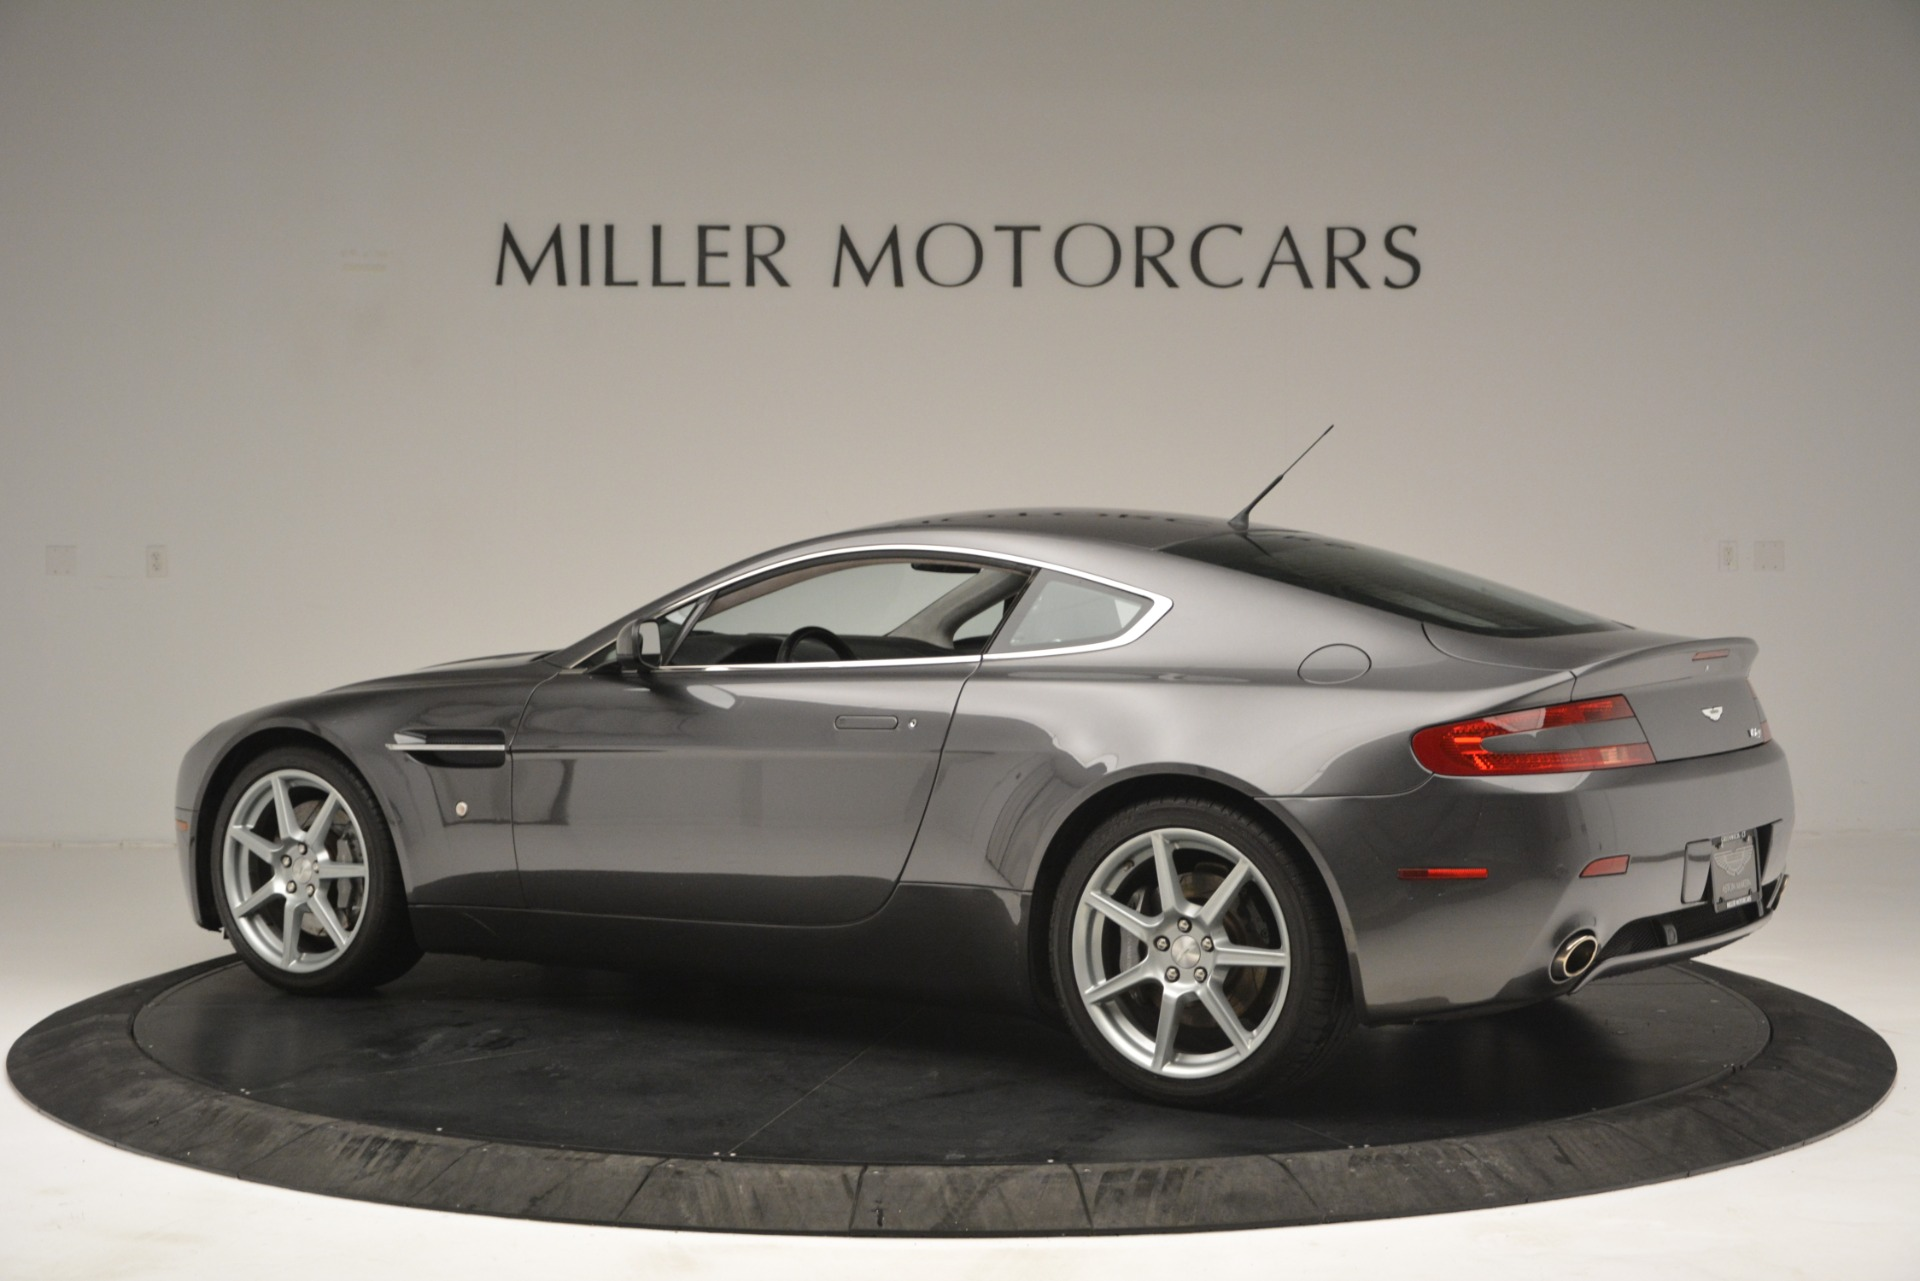 Pre Owned 2006 Aston Martin V8 Vantage For Sale Special Pricing Mclaren Greenwich Stock 7450